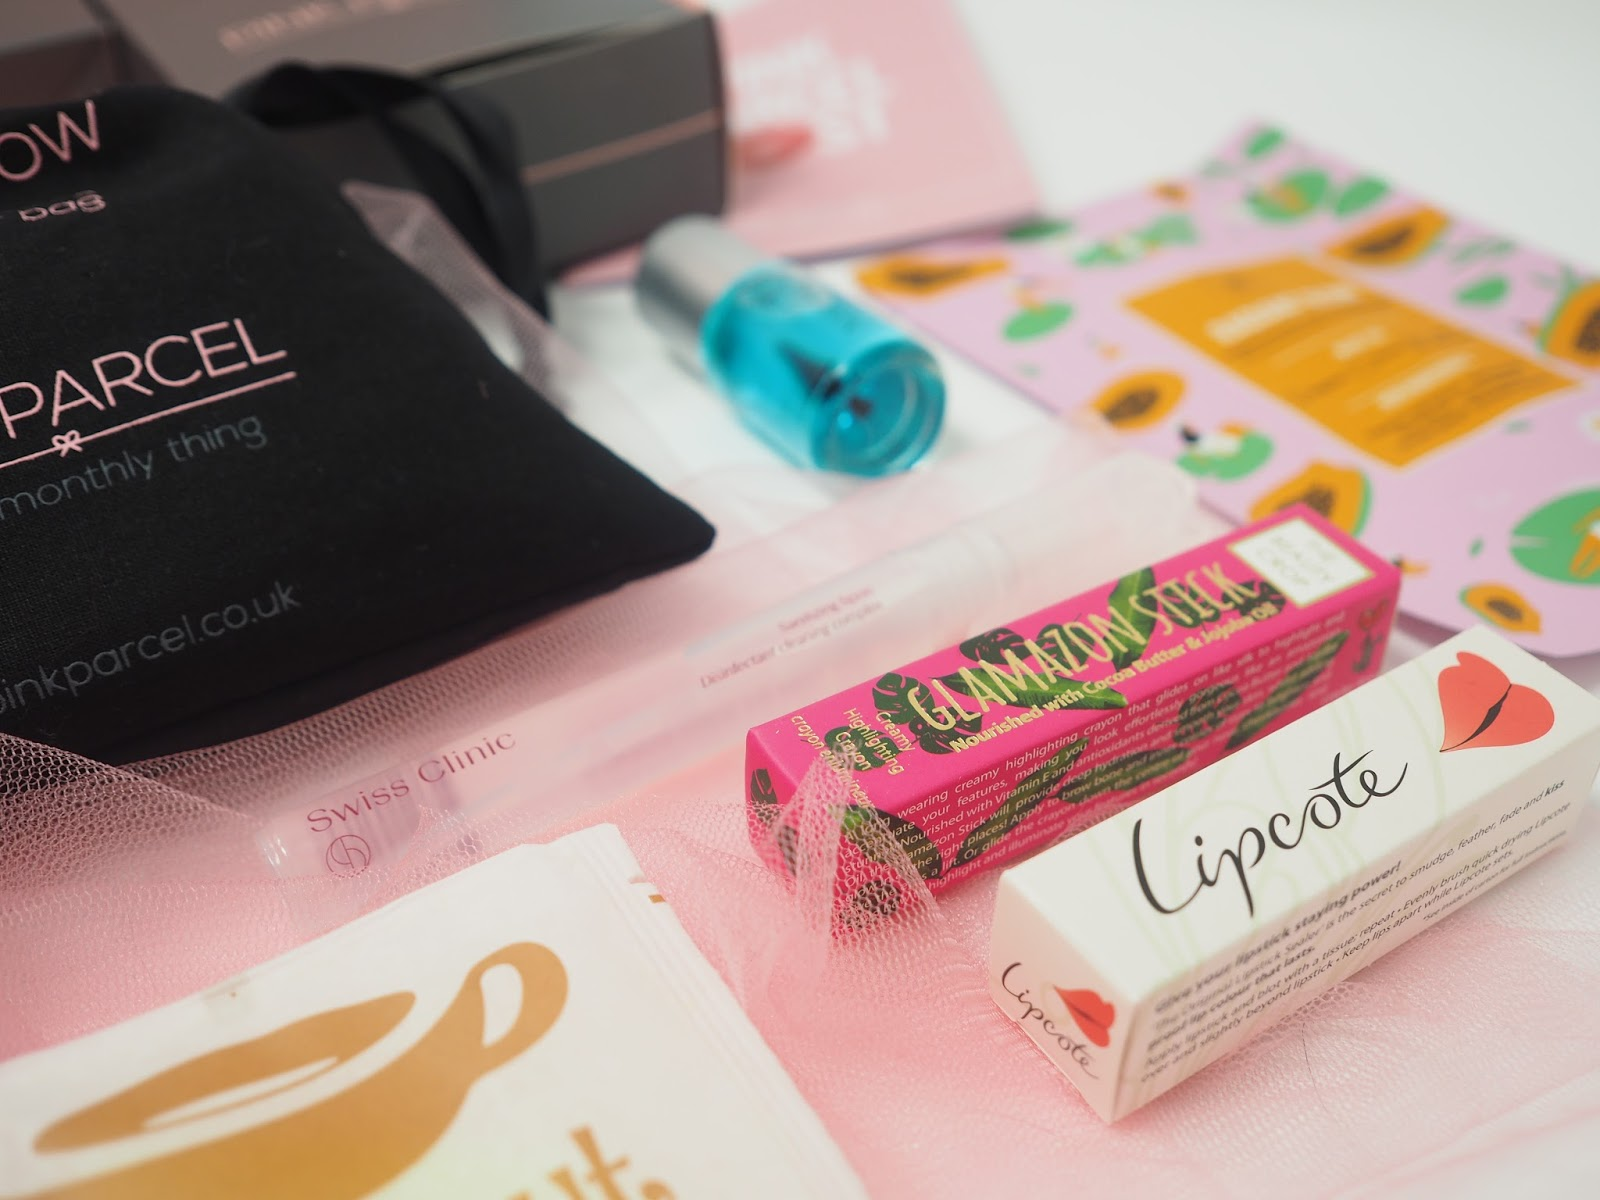 Pink Parcel Period Subscription Box Blog Review